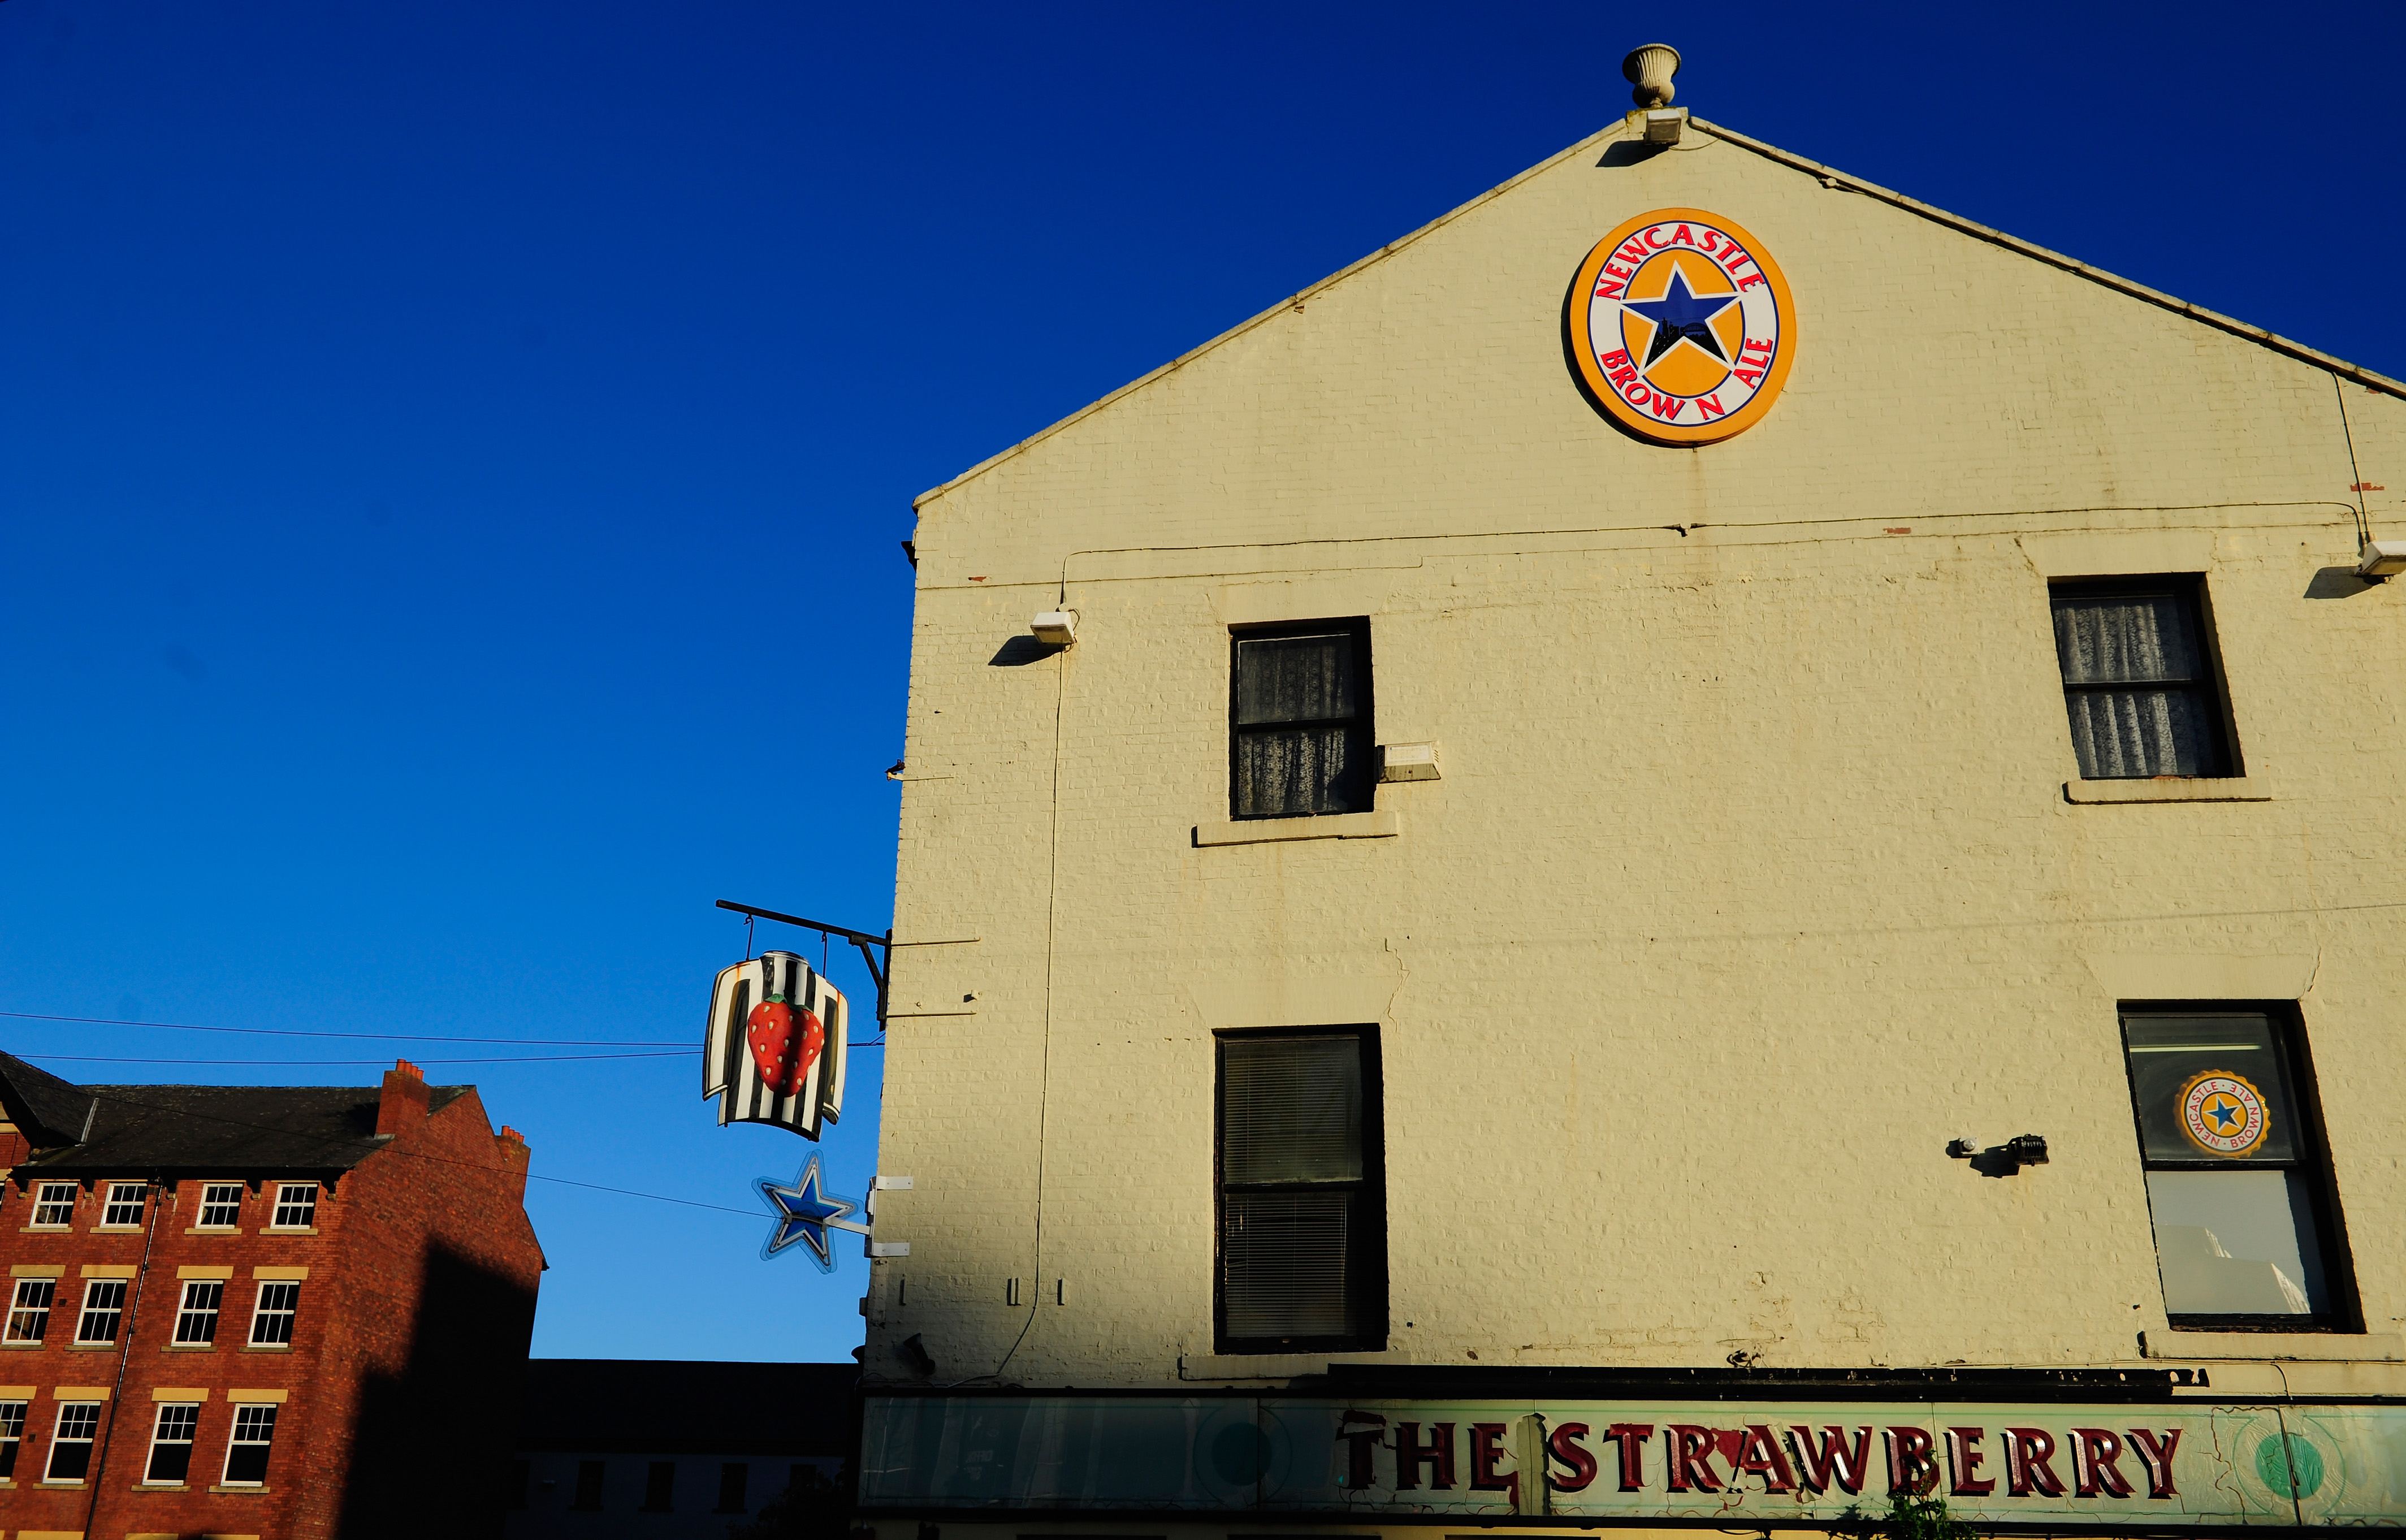 NEWCASTLE UPON TYNE, ENGLAND - DECEMBER 26: A close up of the famous 'Strawberry' Pub before the Barclays Premier League match between Newcastle United and Stoke City at St James' Park on December 26, 2013 in Newcastle upon Tyne, England. (Photo by Stu Forster/Getty Images)